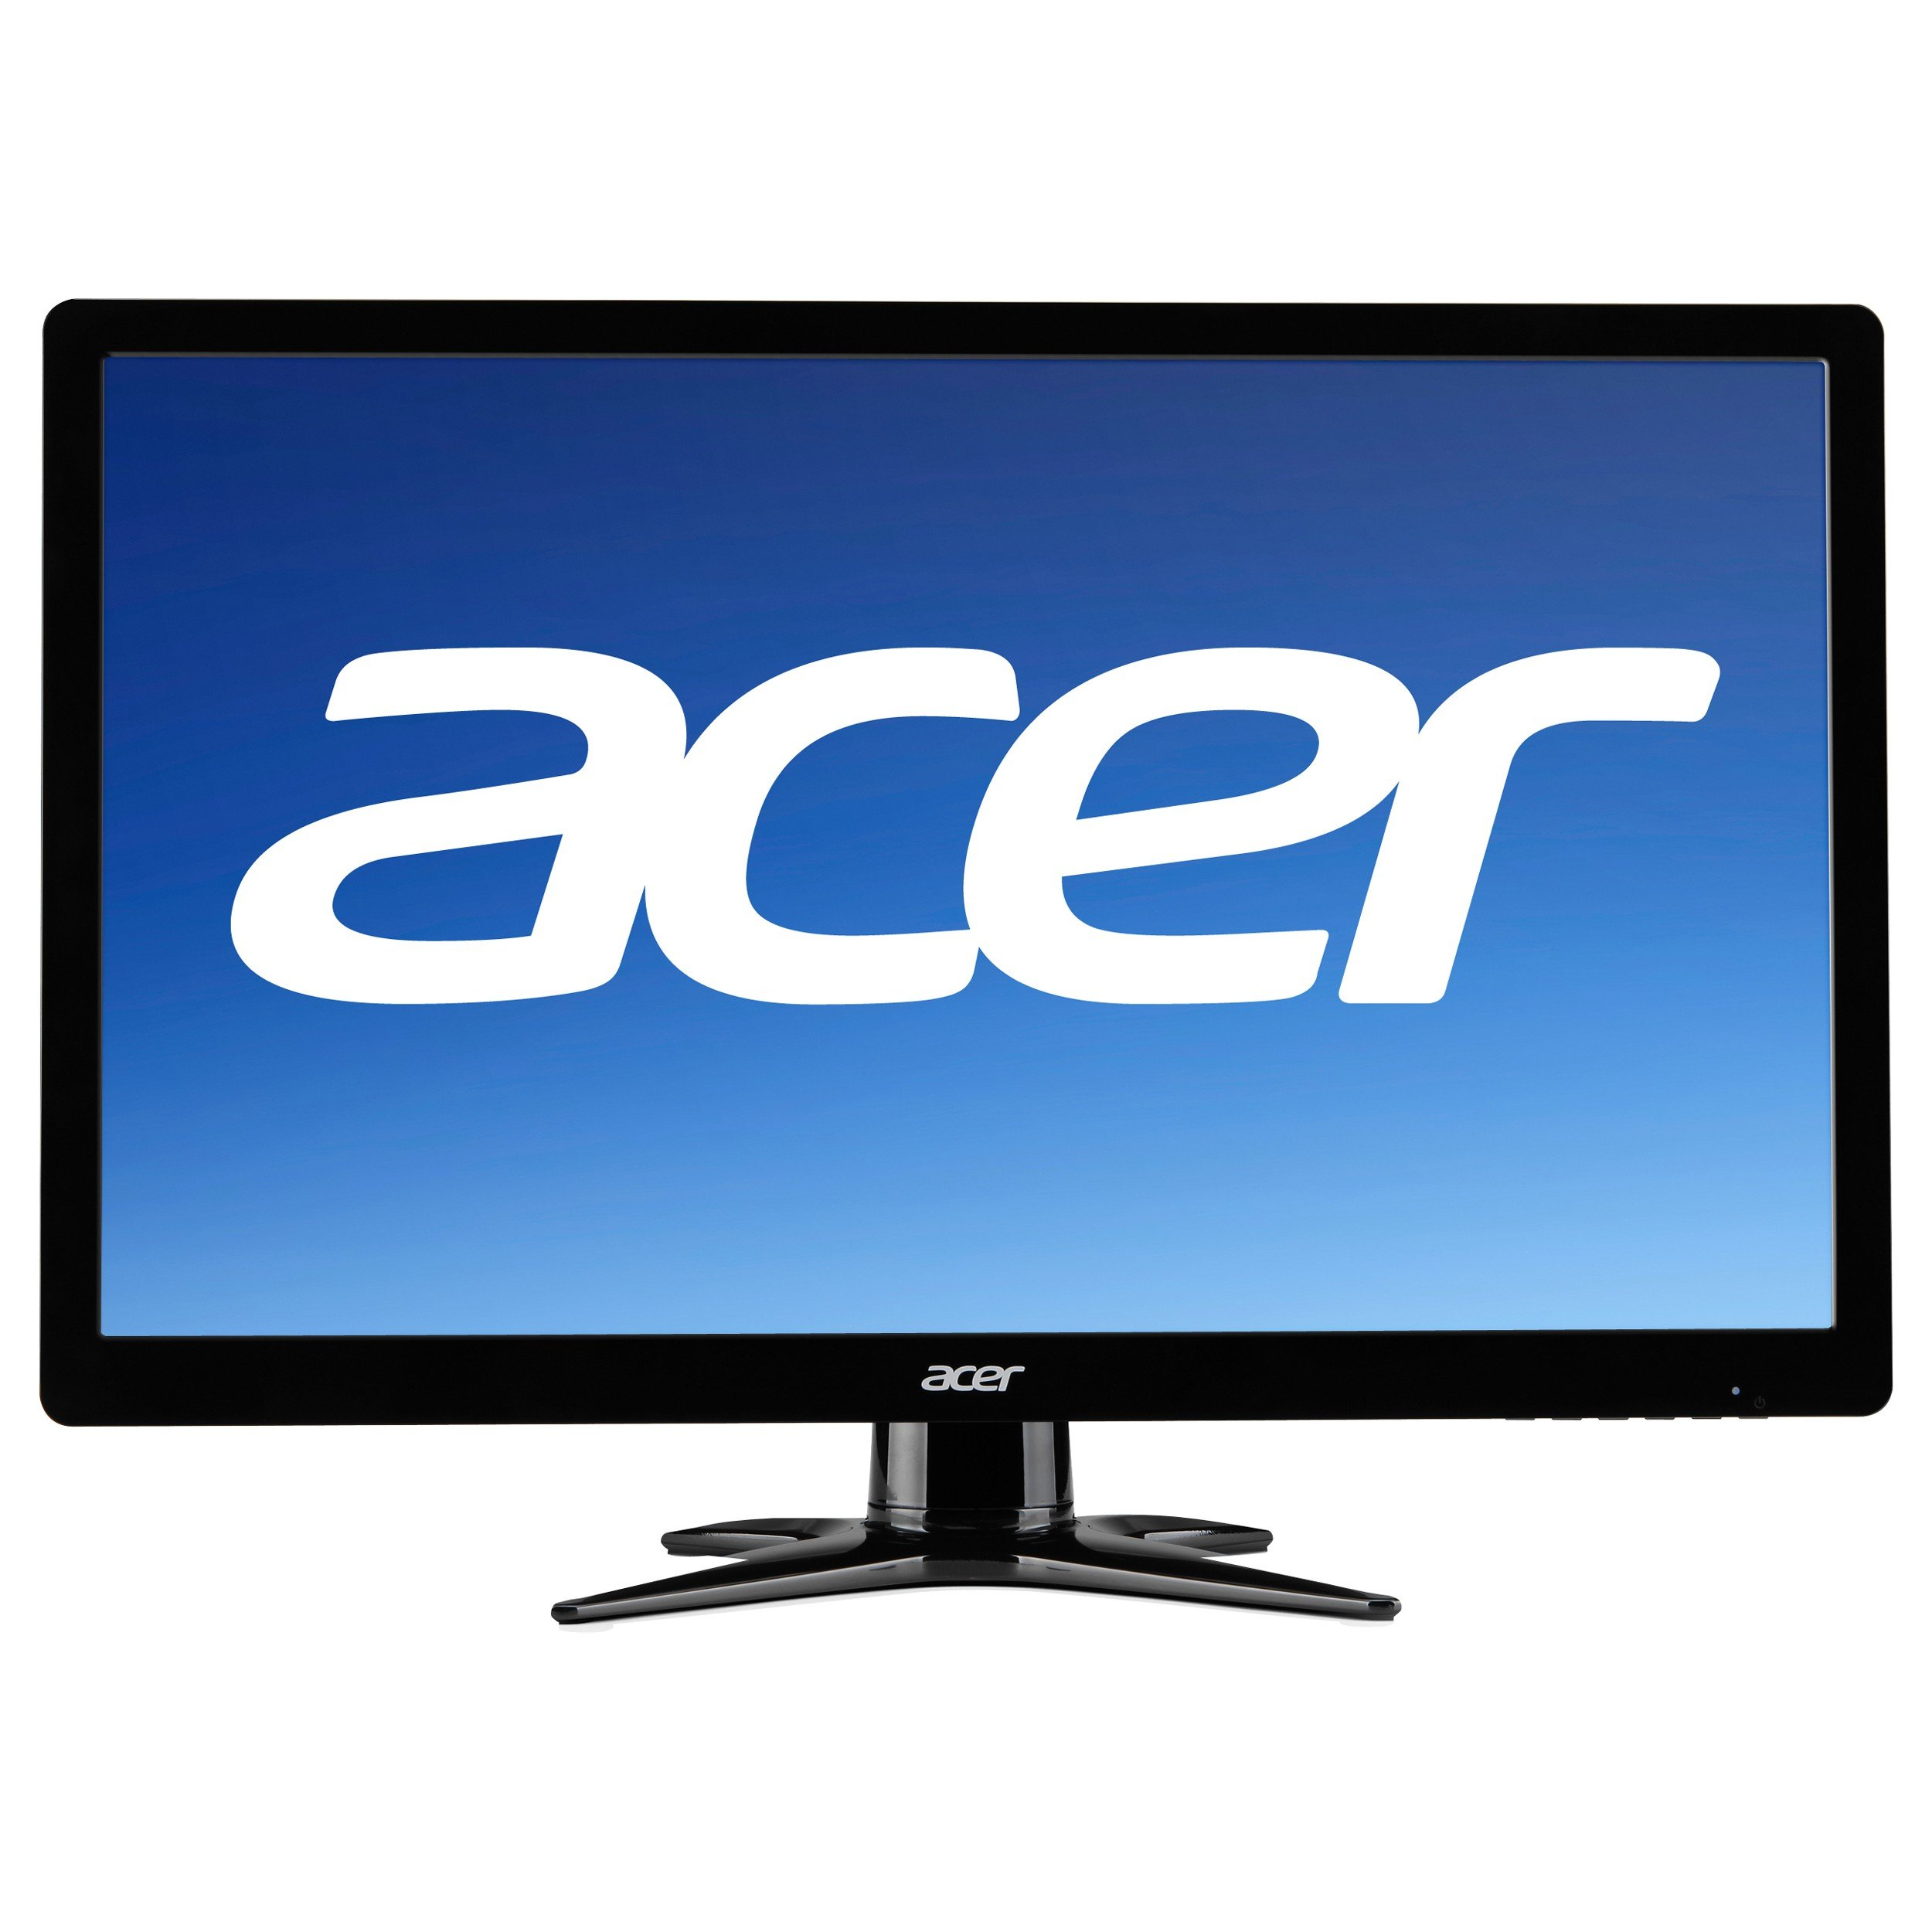 Acer LCD Widescreen 19.5'' Display, HD+ Screen,Black, 60 Hz 1600 x 900|G206HQL BD (Certified Refurbished)